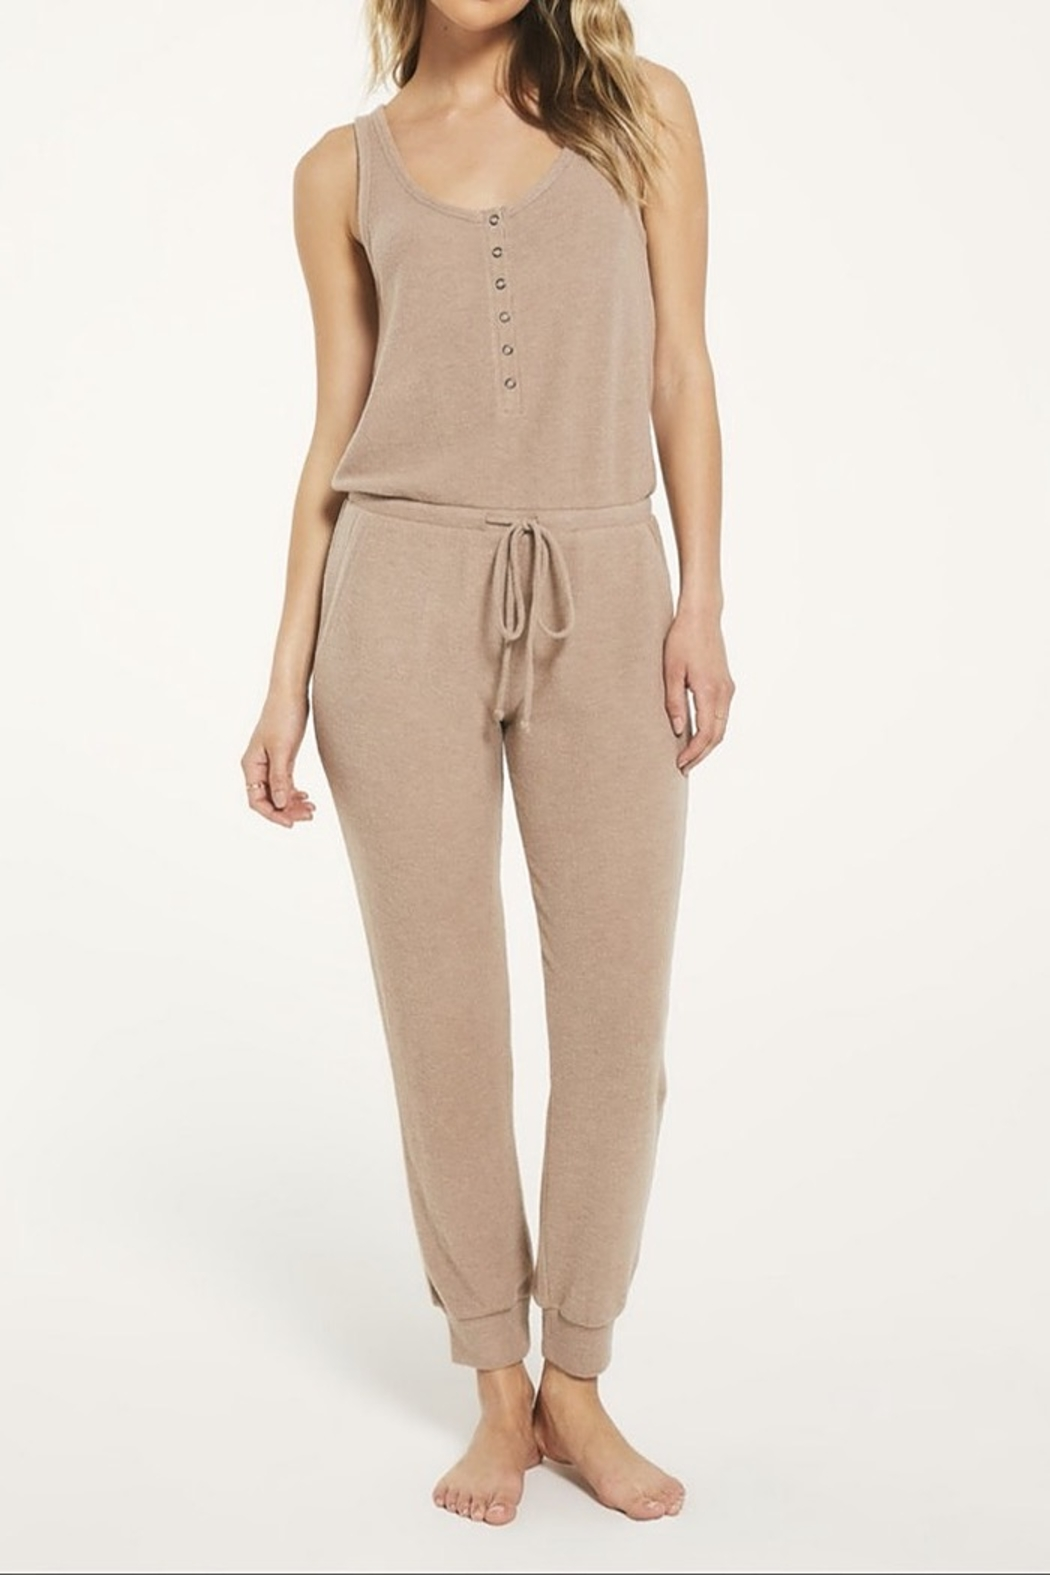 z supply Comfy Ribbed Jumpsuit - Main Image